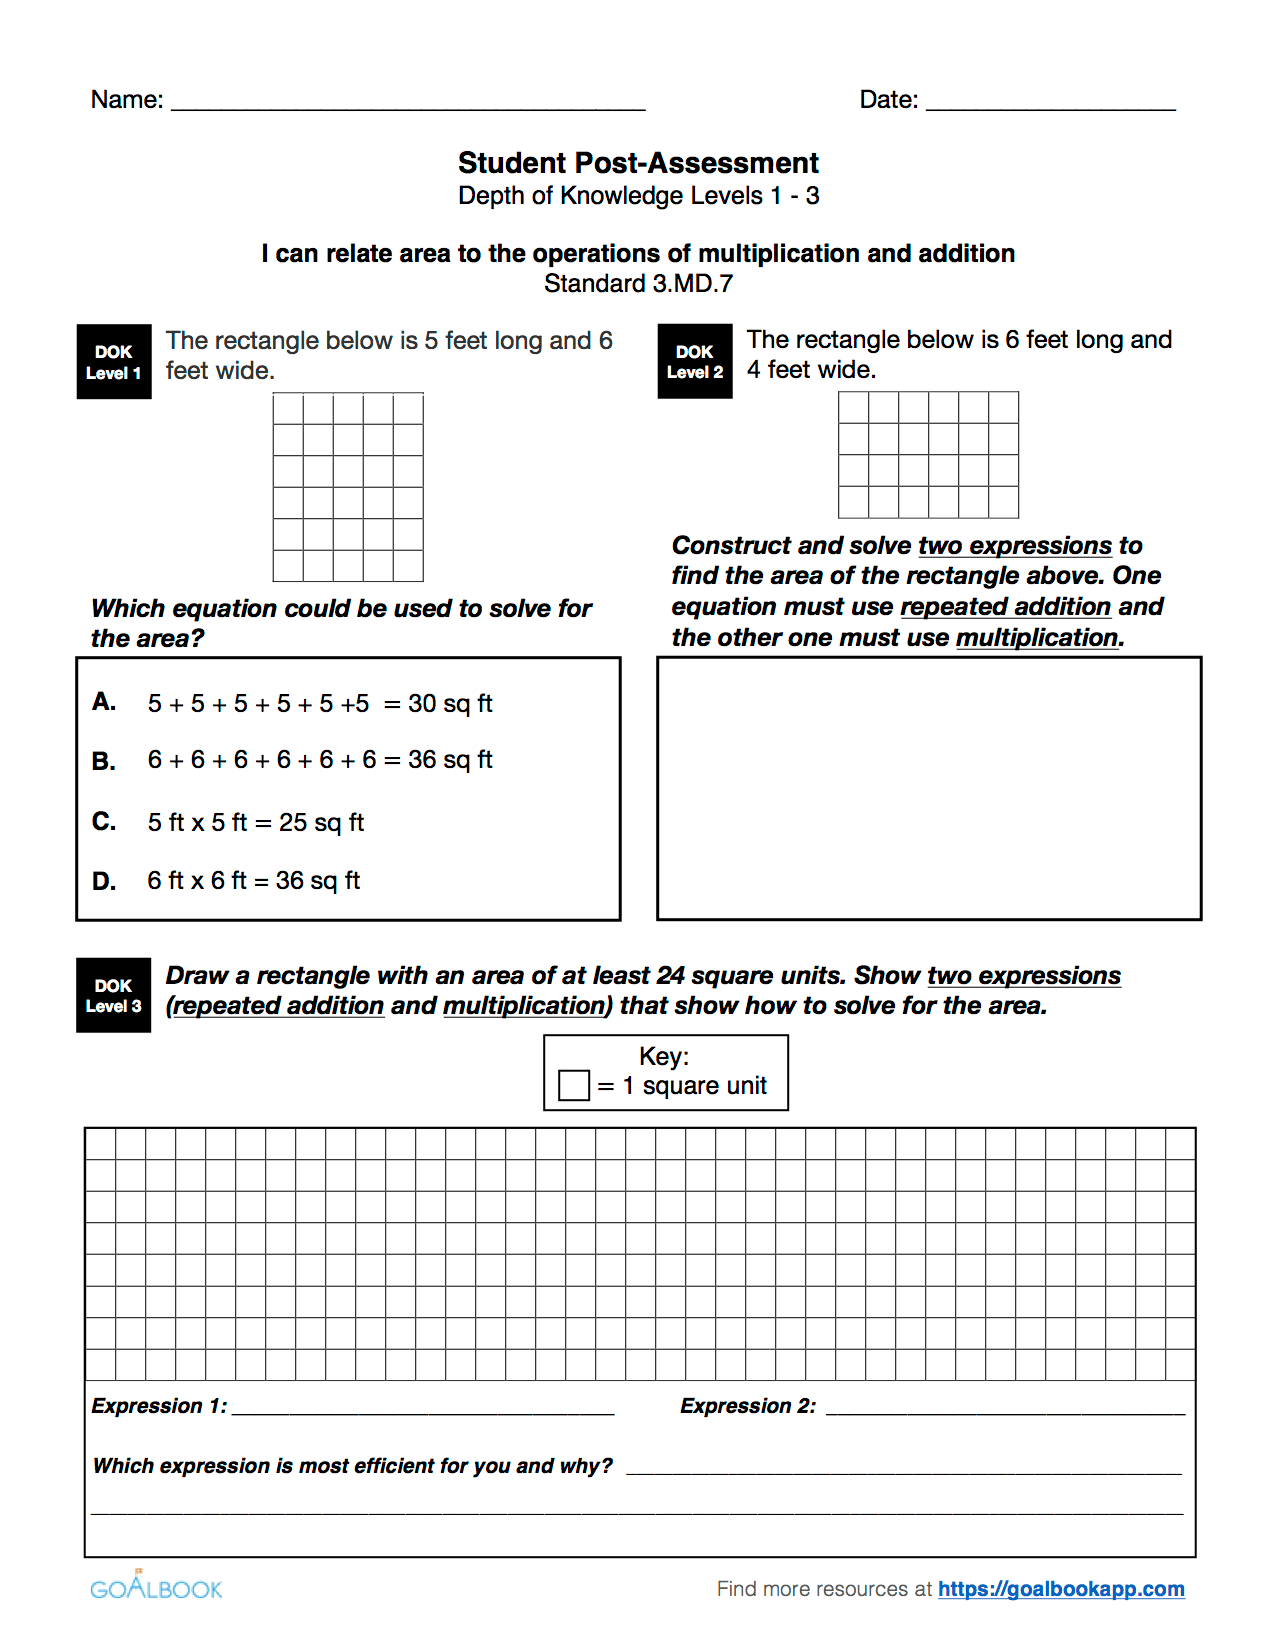 3 Md 7 Area Using Multiplication Amp Addition